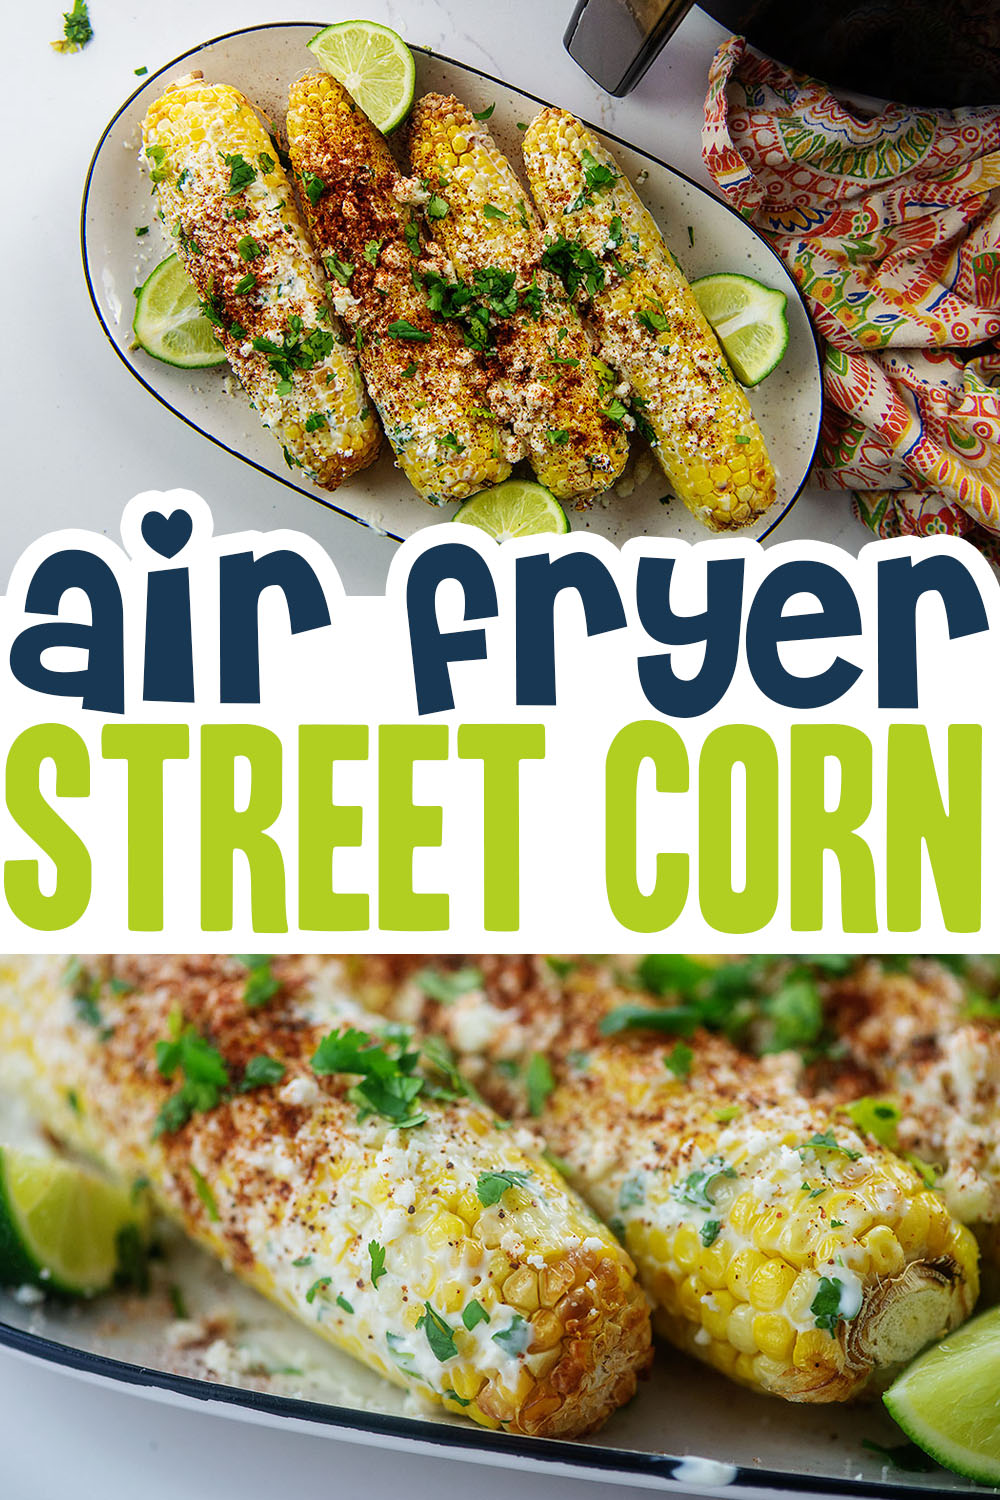 This street corn recipe uses air fried corn on the cob and then gets coated in a creamy sauce.